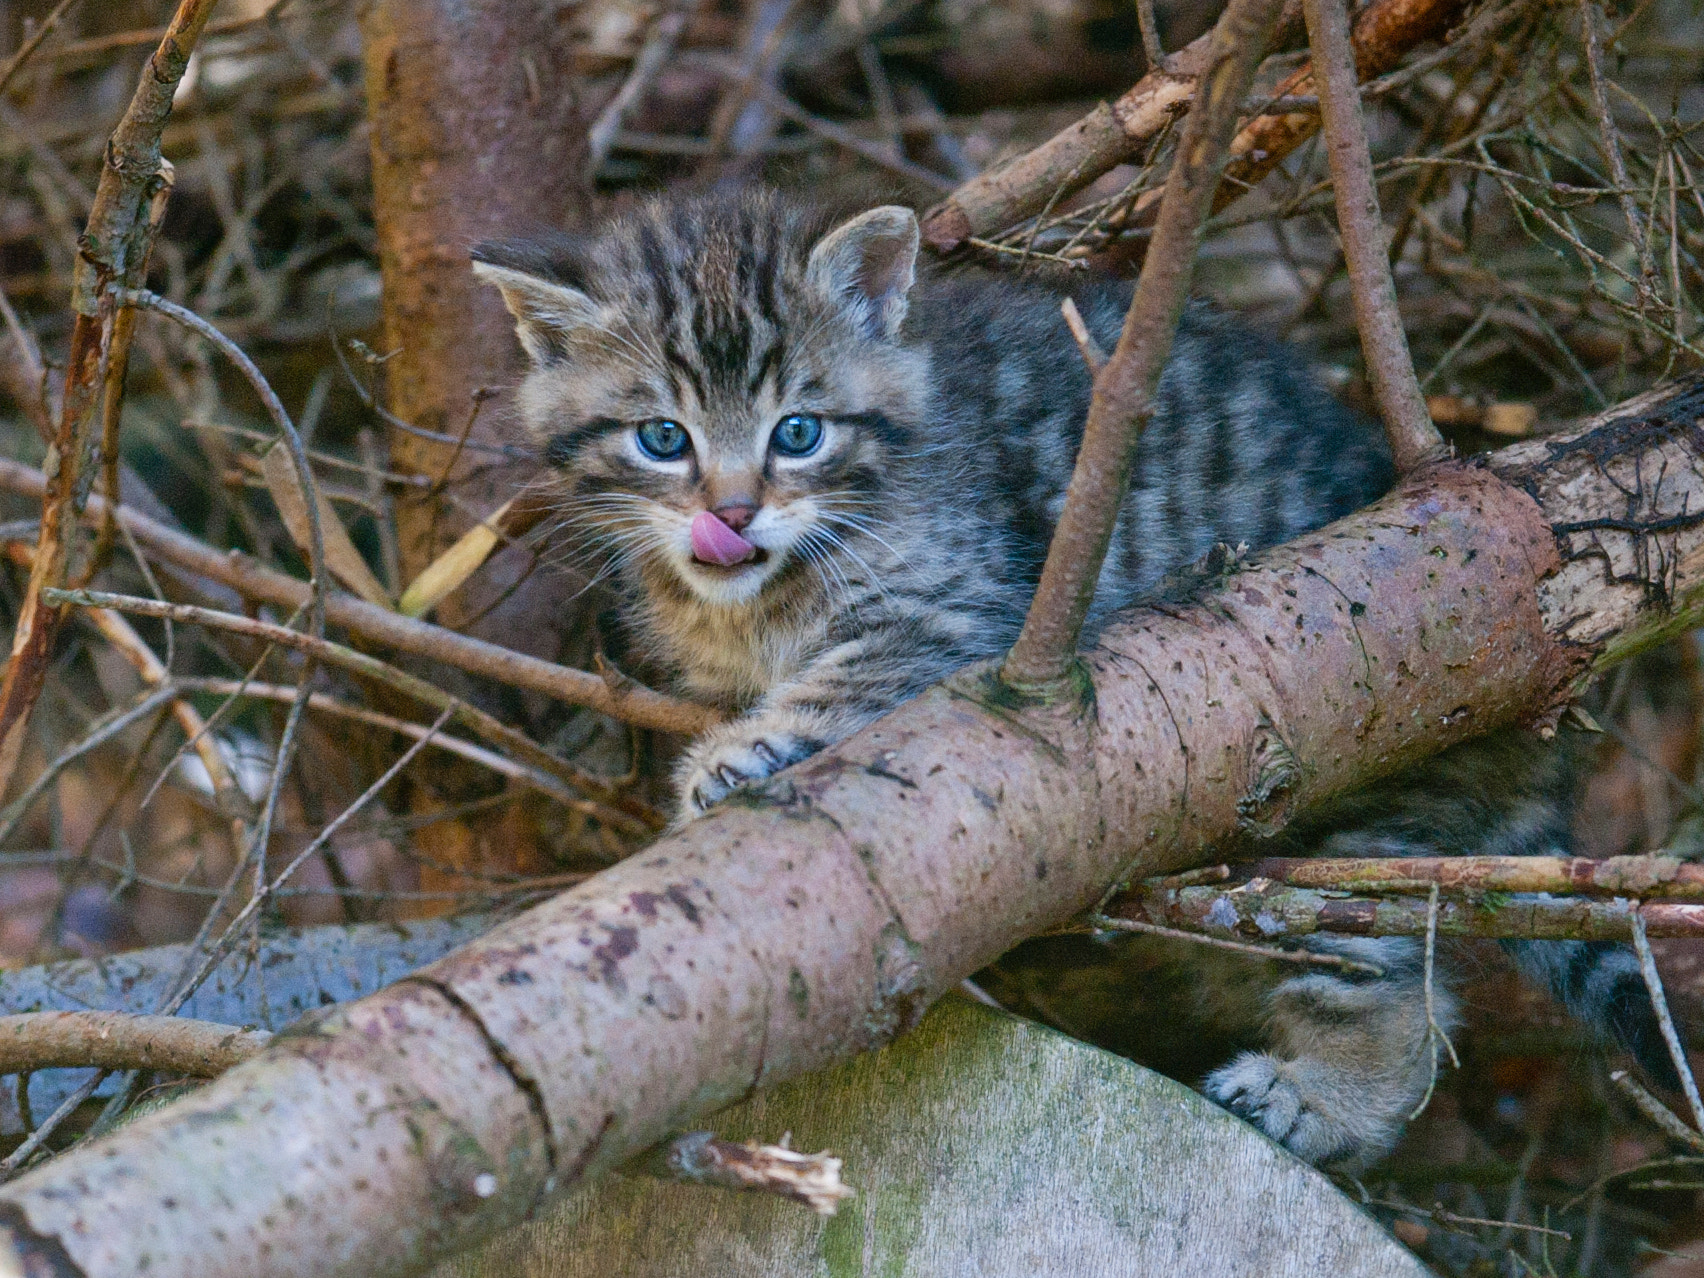 Photograph Wild Kitty by andreas richter on 500px